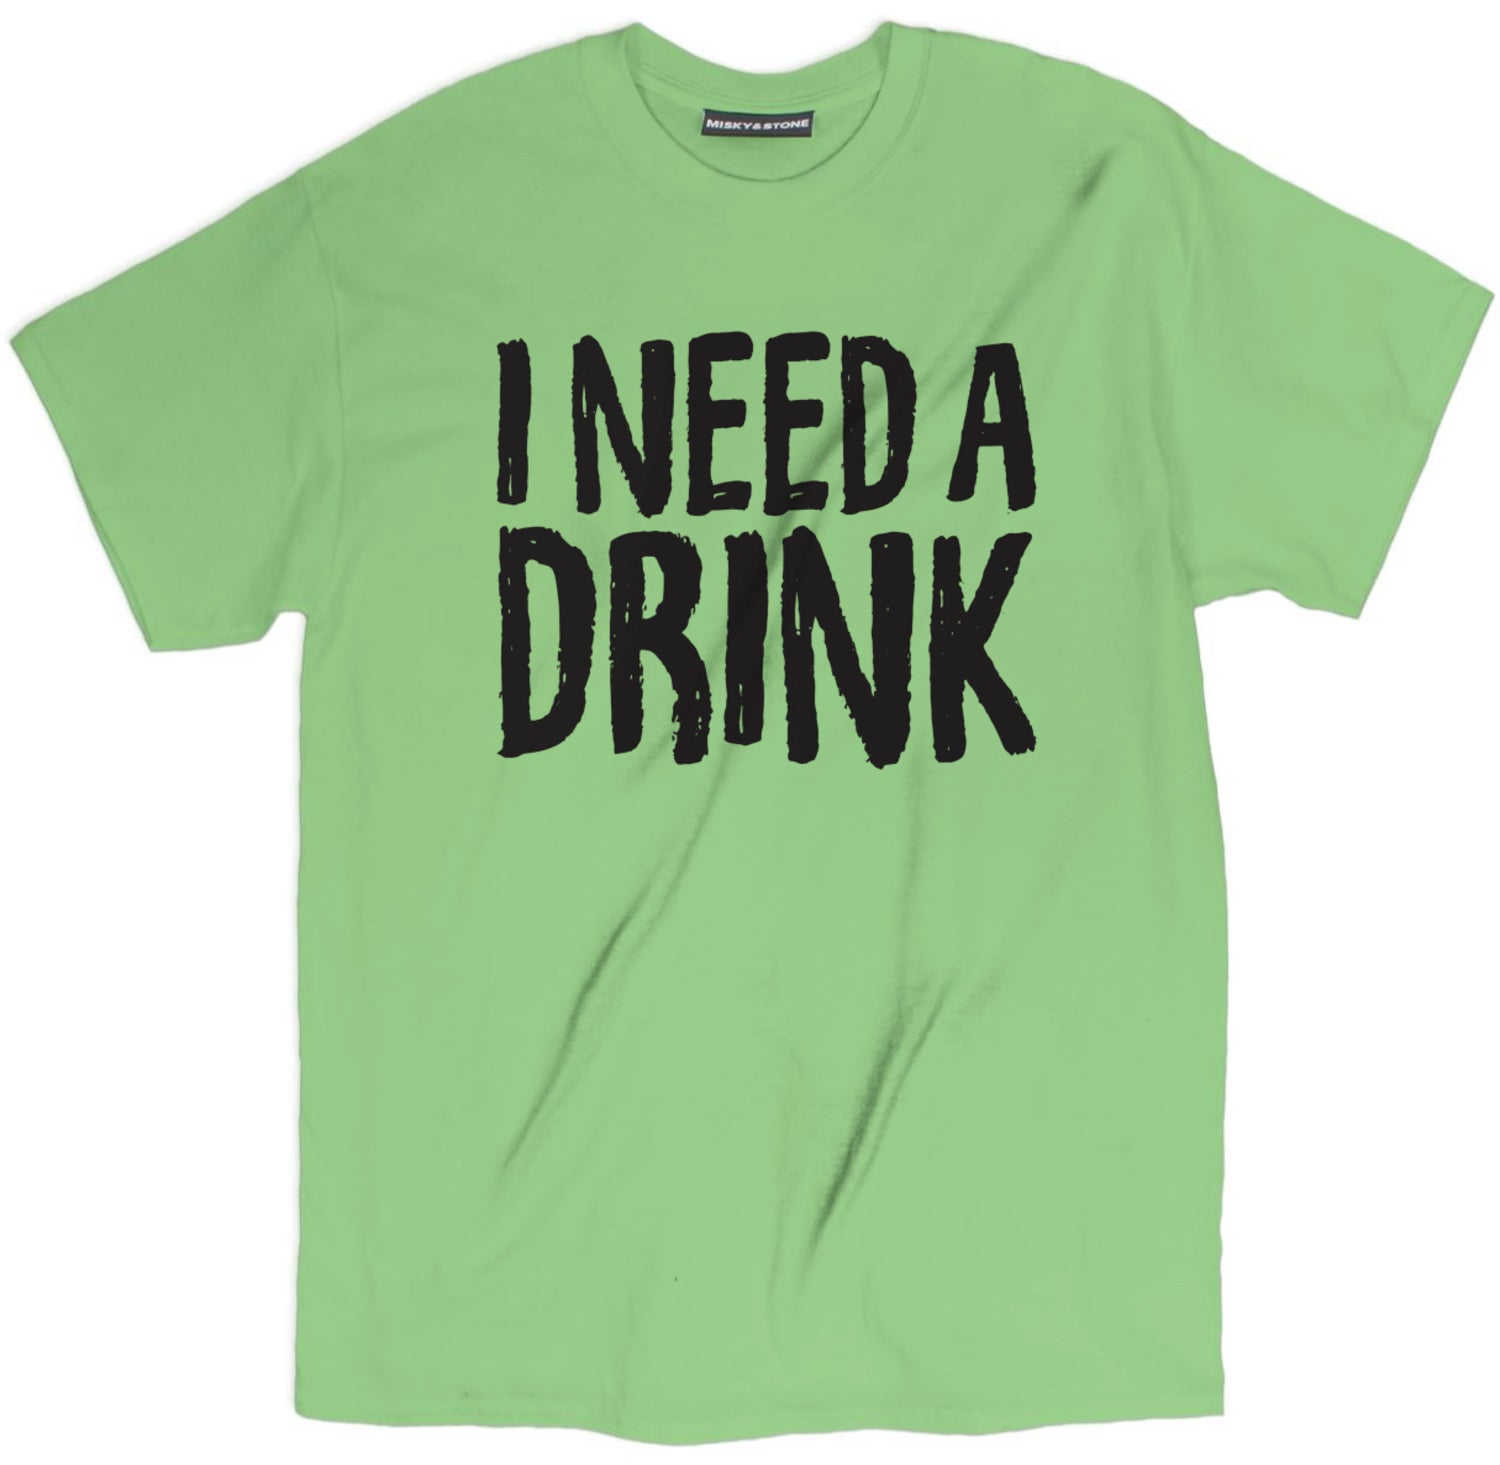 drunk shirts, drunk t shirts, day drunk shirt, funny drunk shirts, drunk 1 drunk 2 shirts, funny beer shirts, funny beer t shirts, drinking shirts, alcohol shirts, alcohol t shirts, funny drinking shirts, beer shirts,